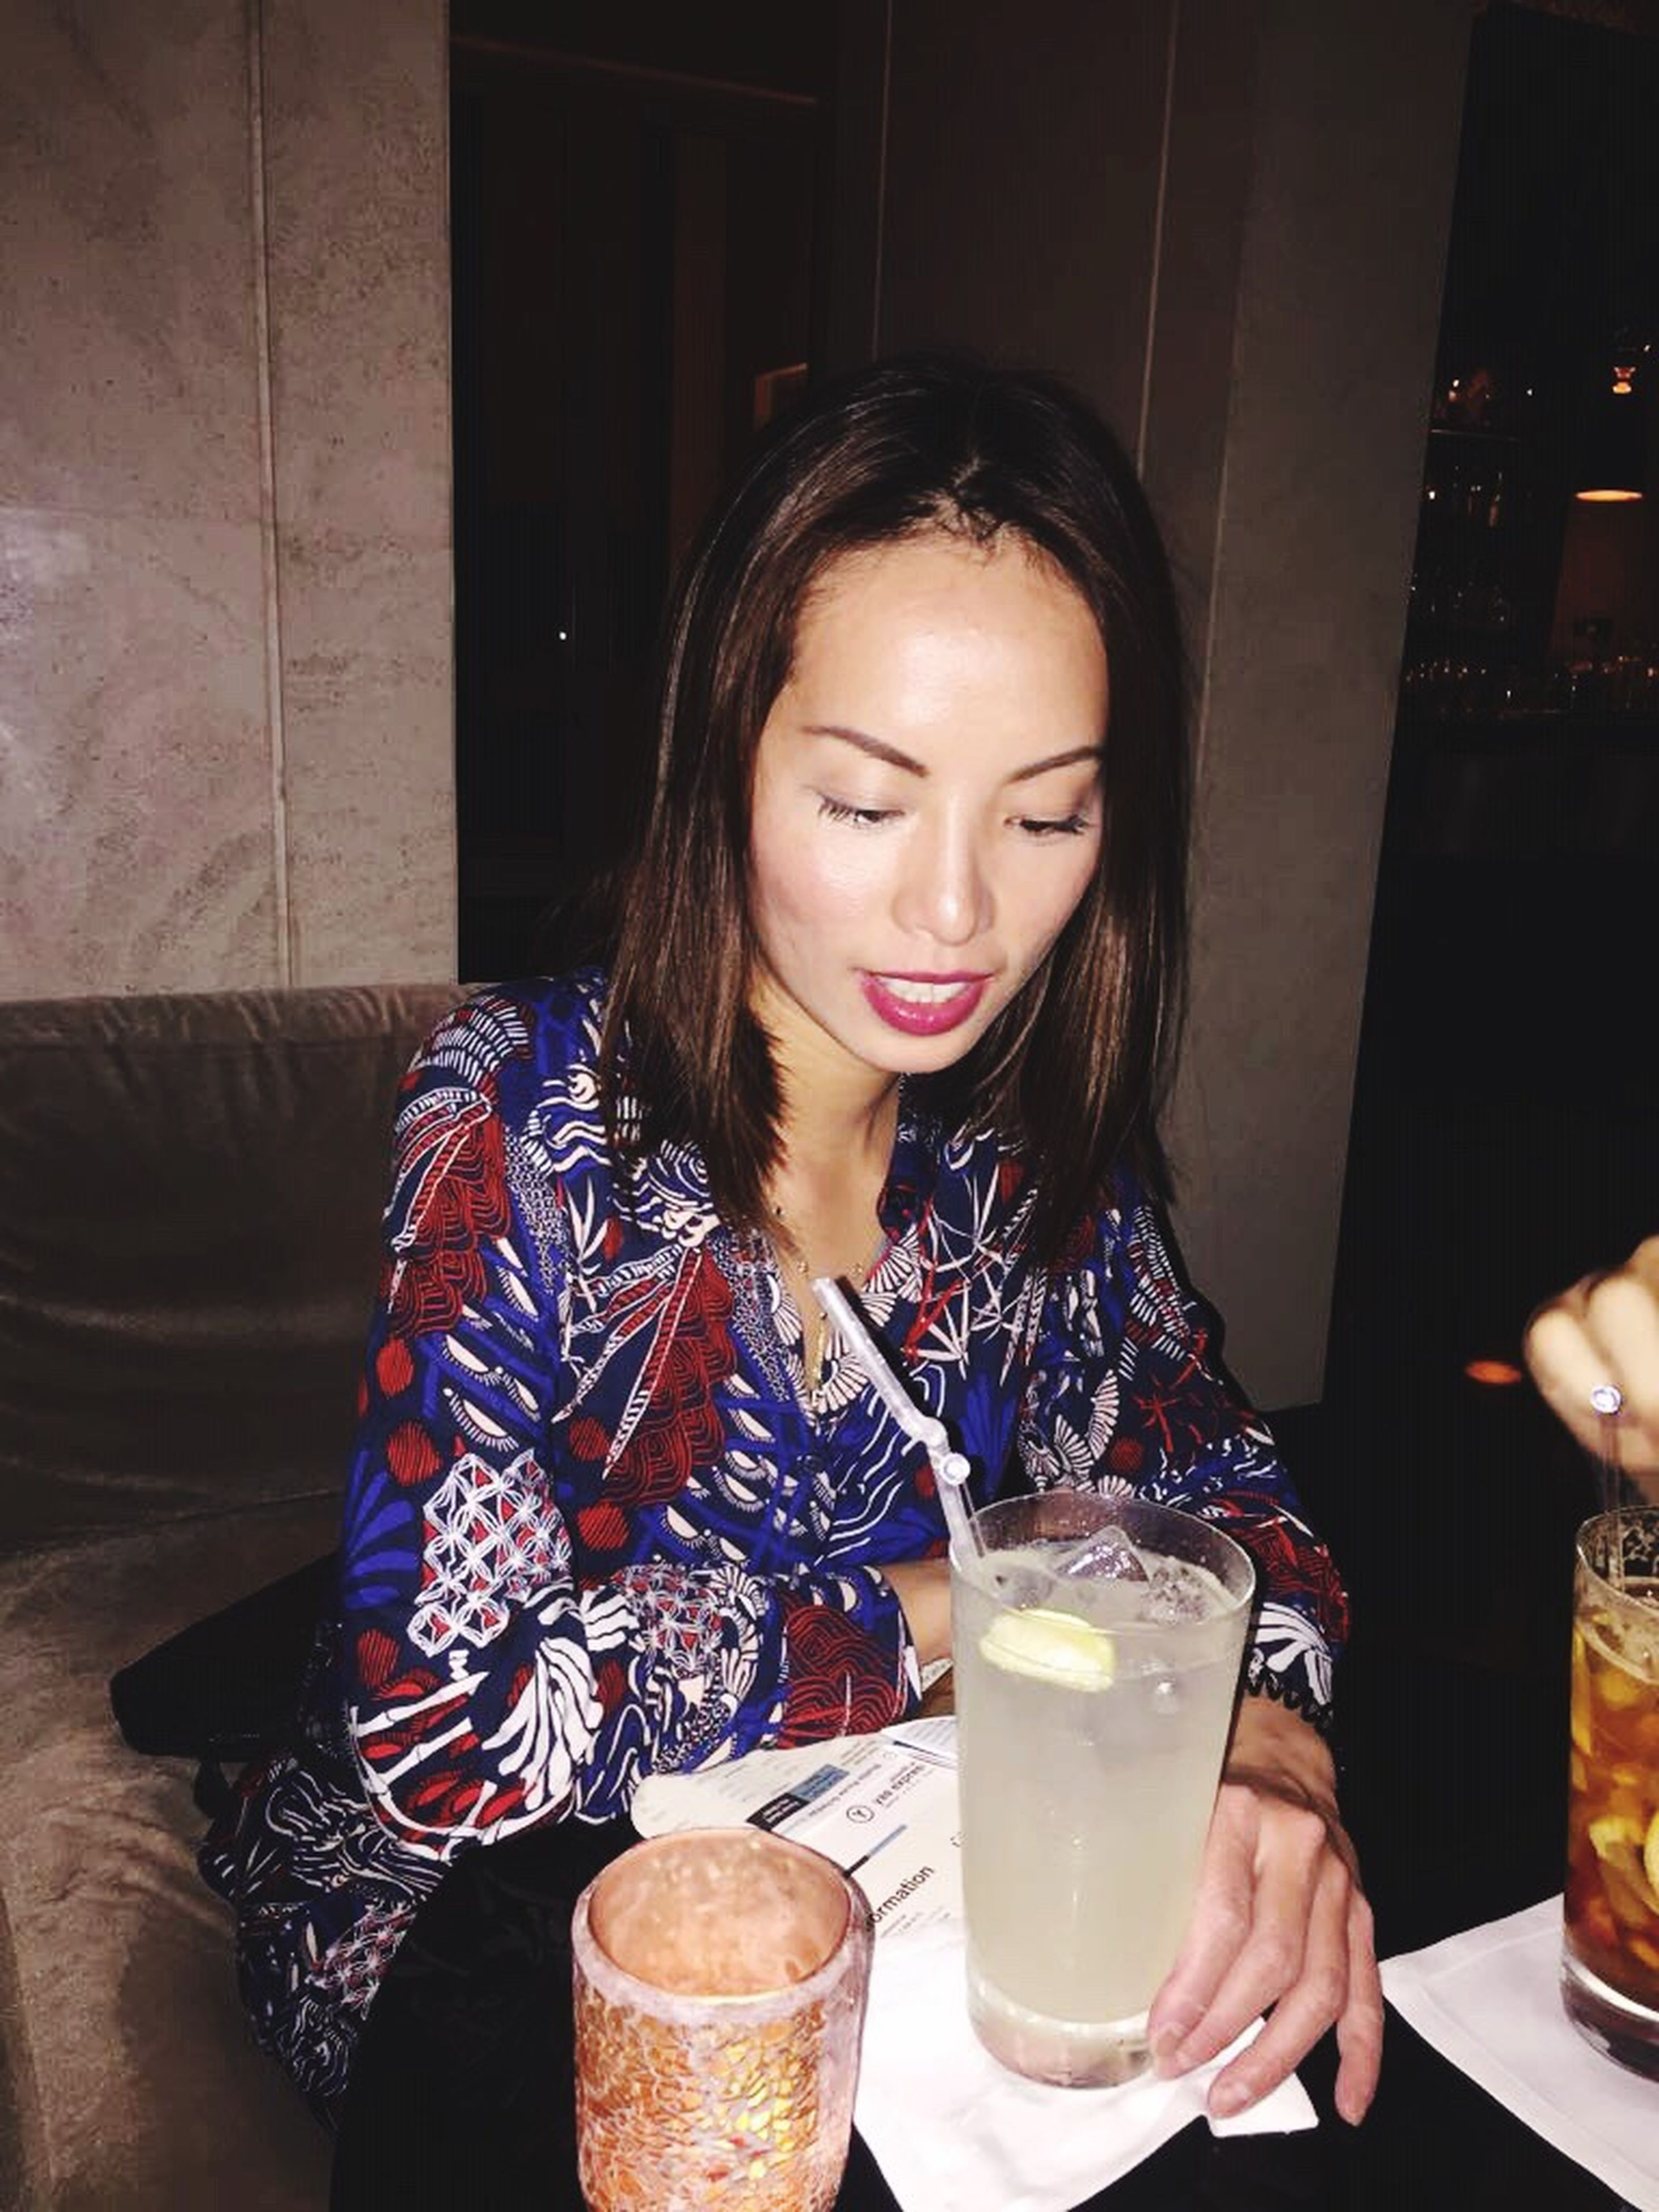 drink, food and drink, table, refreshment, freshness, sitting, leisure activity, lifestyles, indoors, young women, drinking, coffee cup, coffee - drink, spoon, young adult, restaurant, casual clothing, holding, person, hot drink